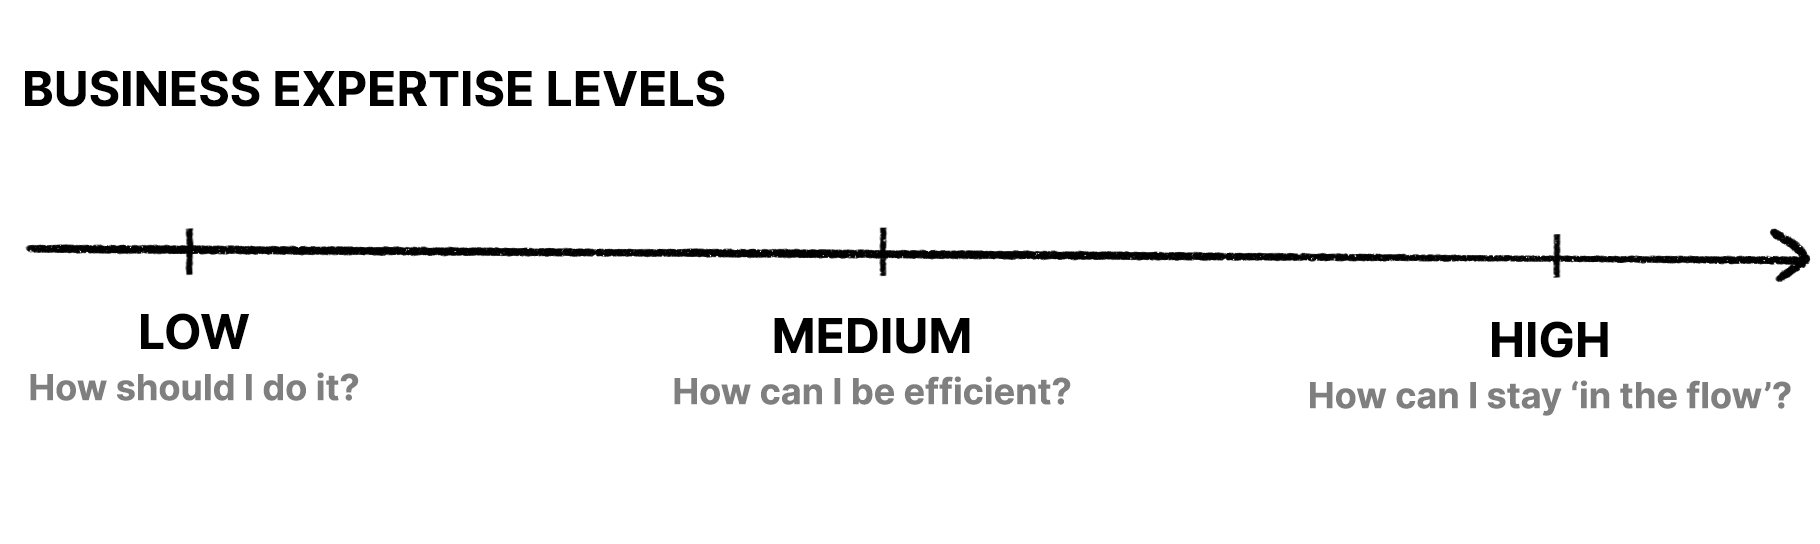 Business expertise levels: low (how should I do it?), Medium (how can I be efficient?), High (how can I stay in the flow?).